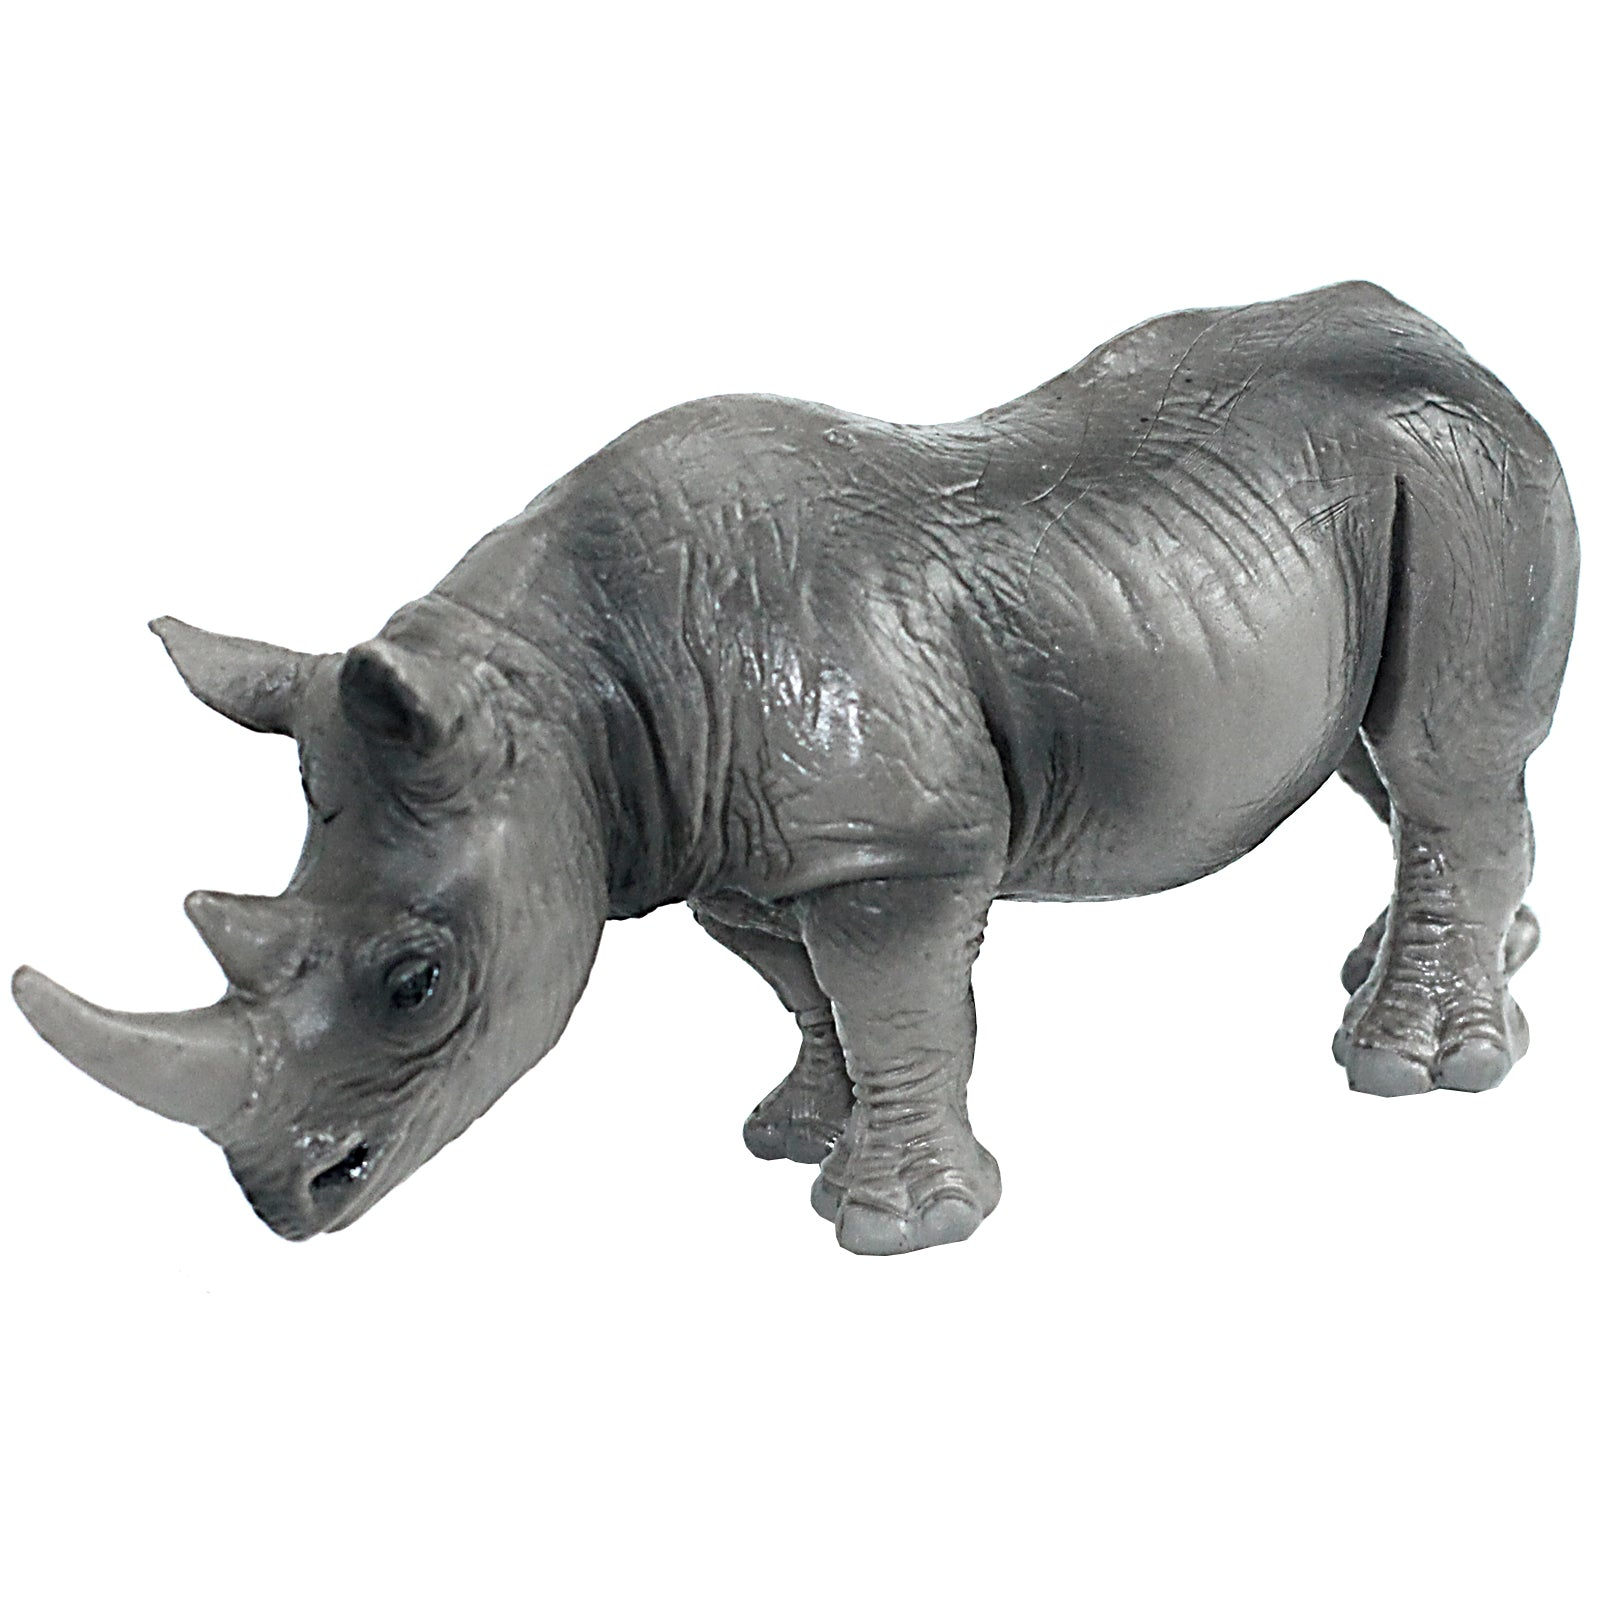 Rhinoceros Figure 3-count